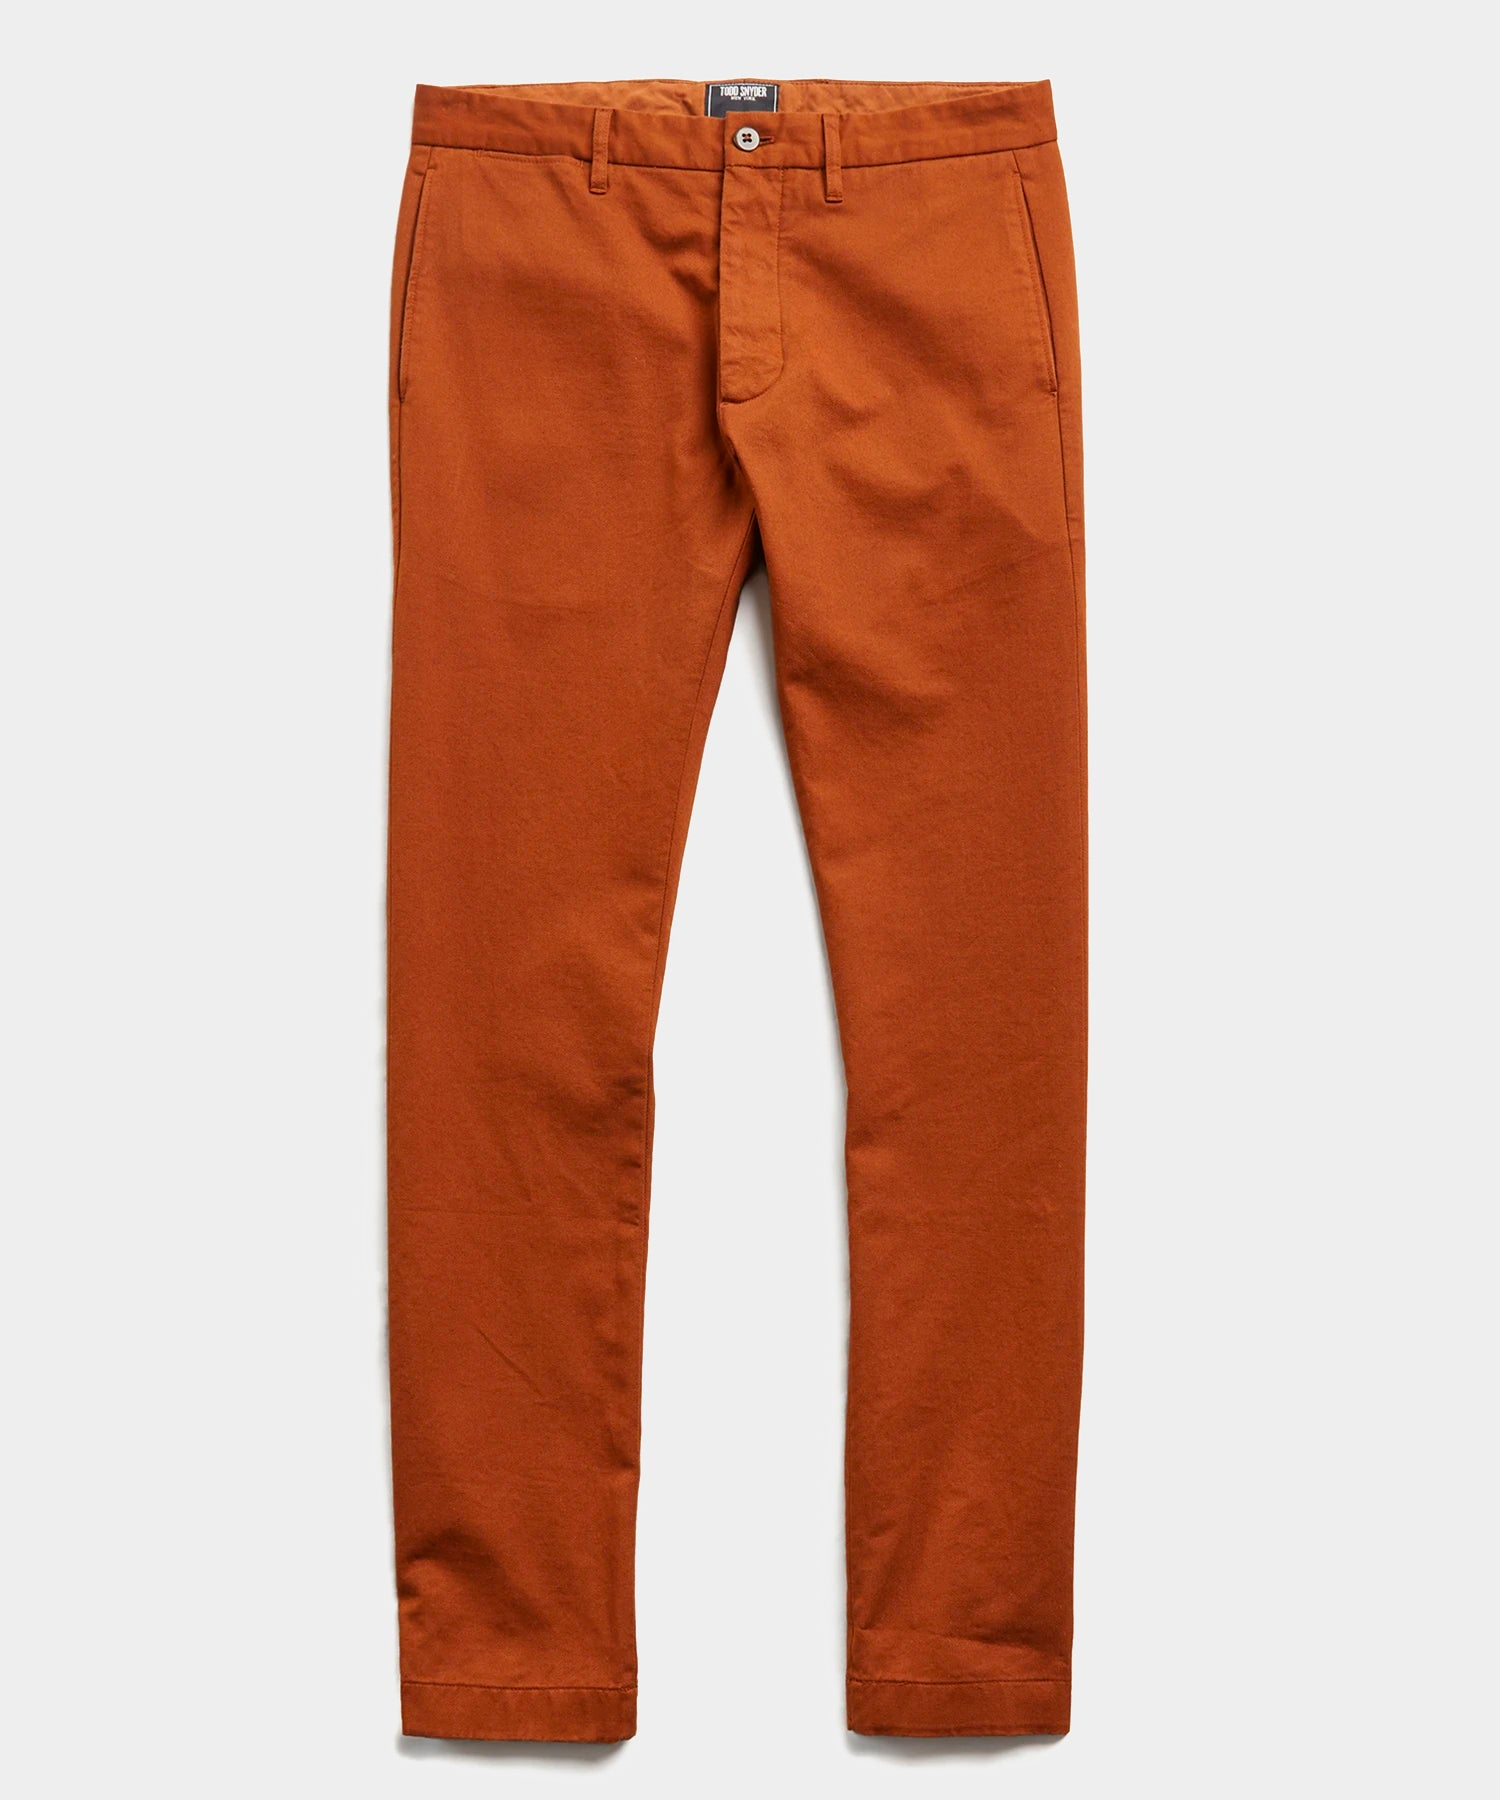 Japanese Garment Dyed Selvedge Chino in Chestnut